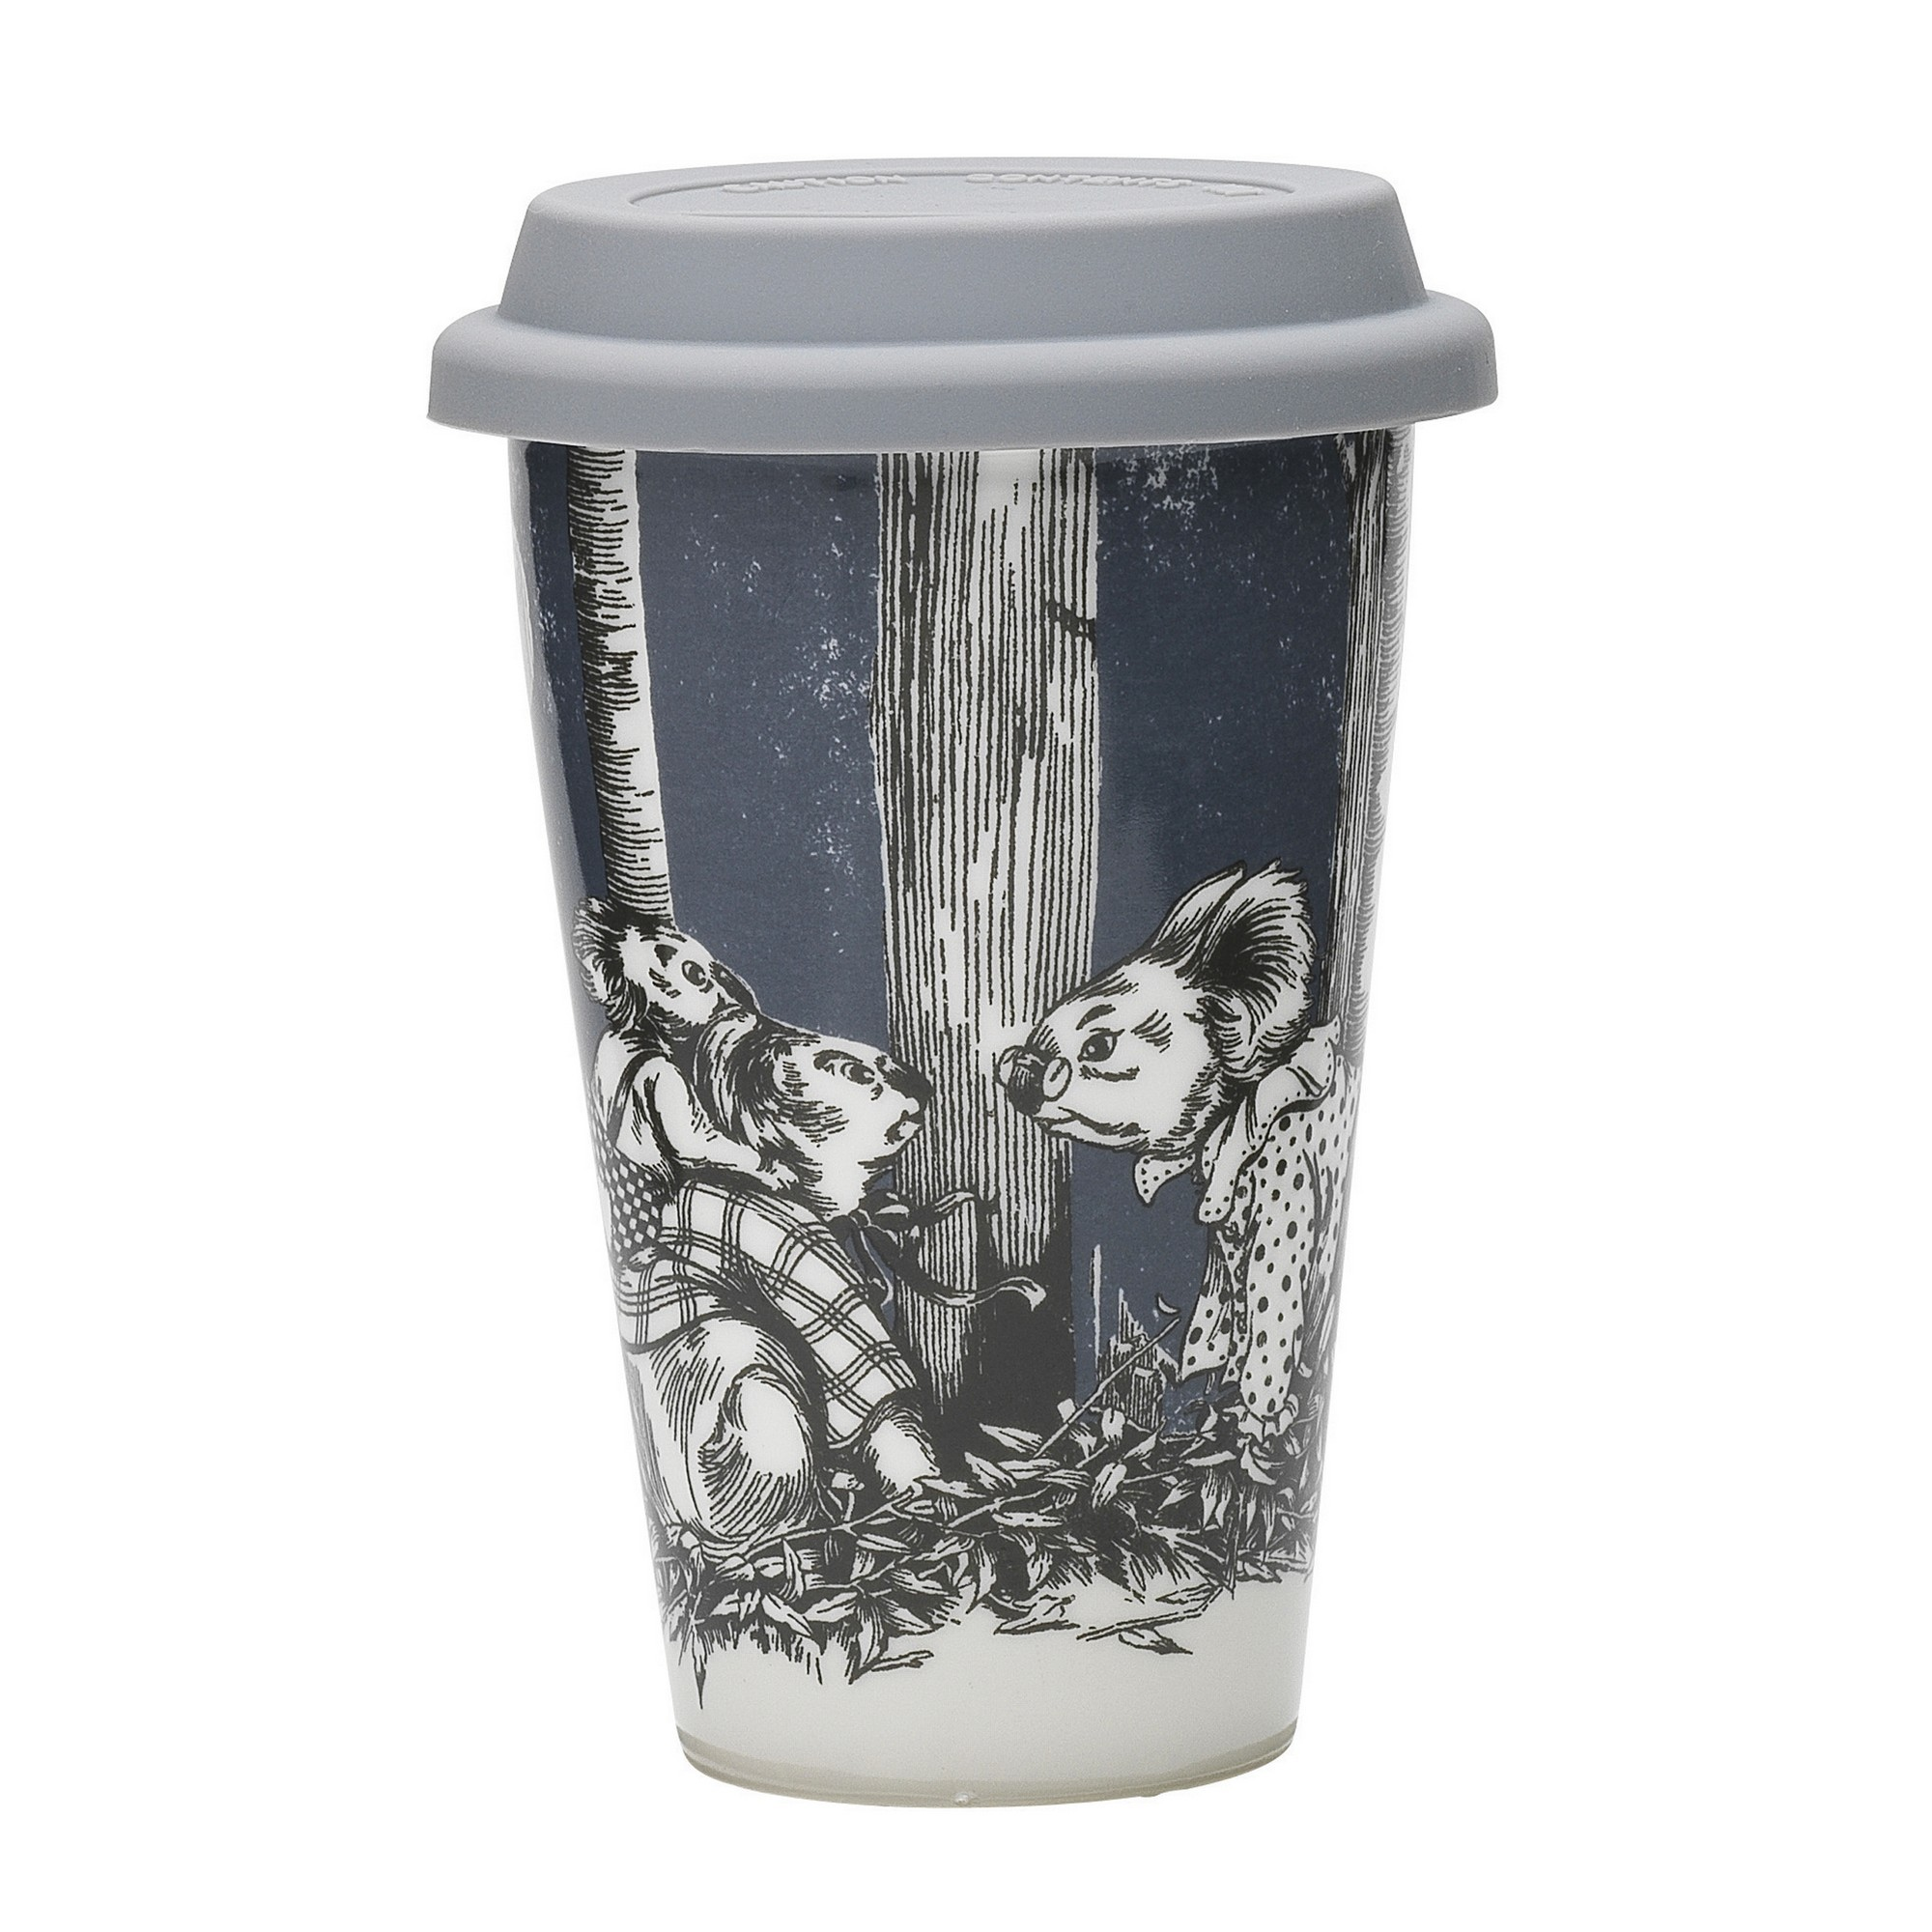 Ecology Blinky Bill New Bone China Travel Mug, Ink